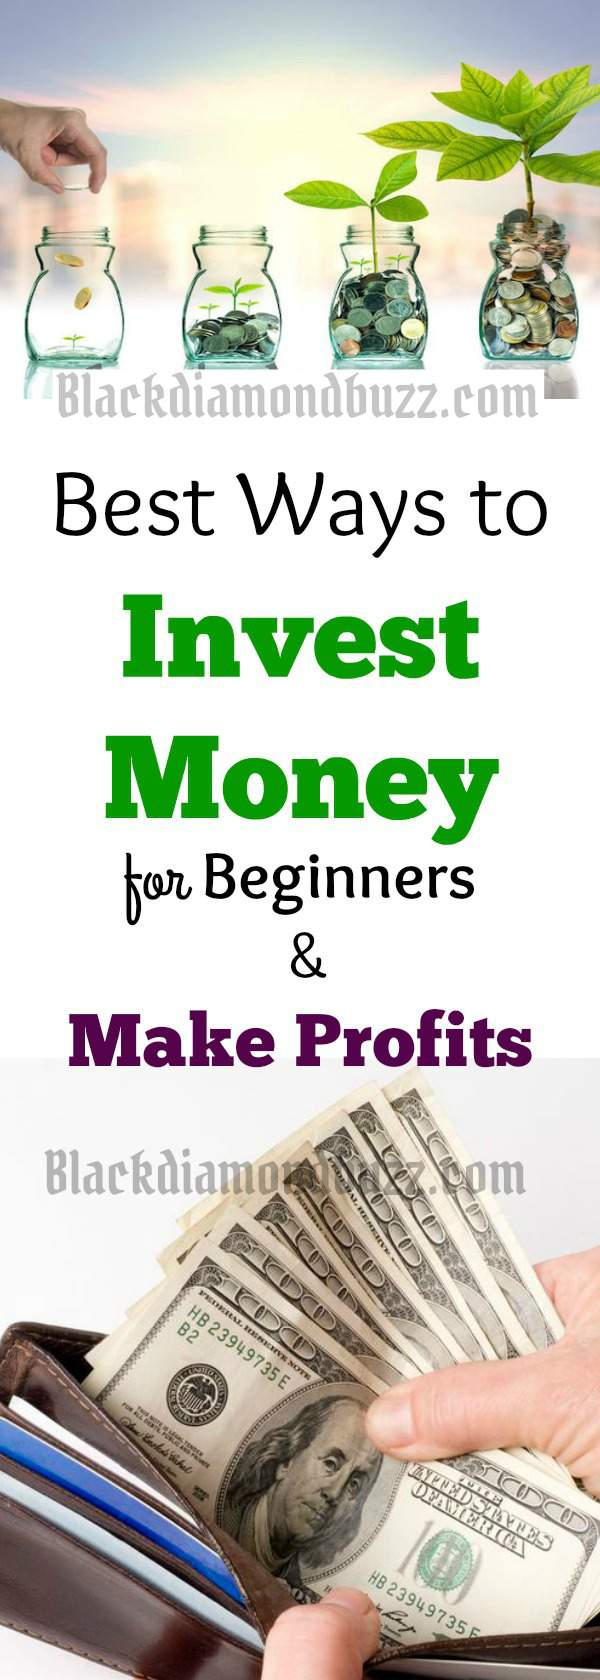 15 Best Ways to Invest Money for Beginners to Get Good Returns